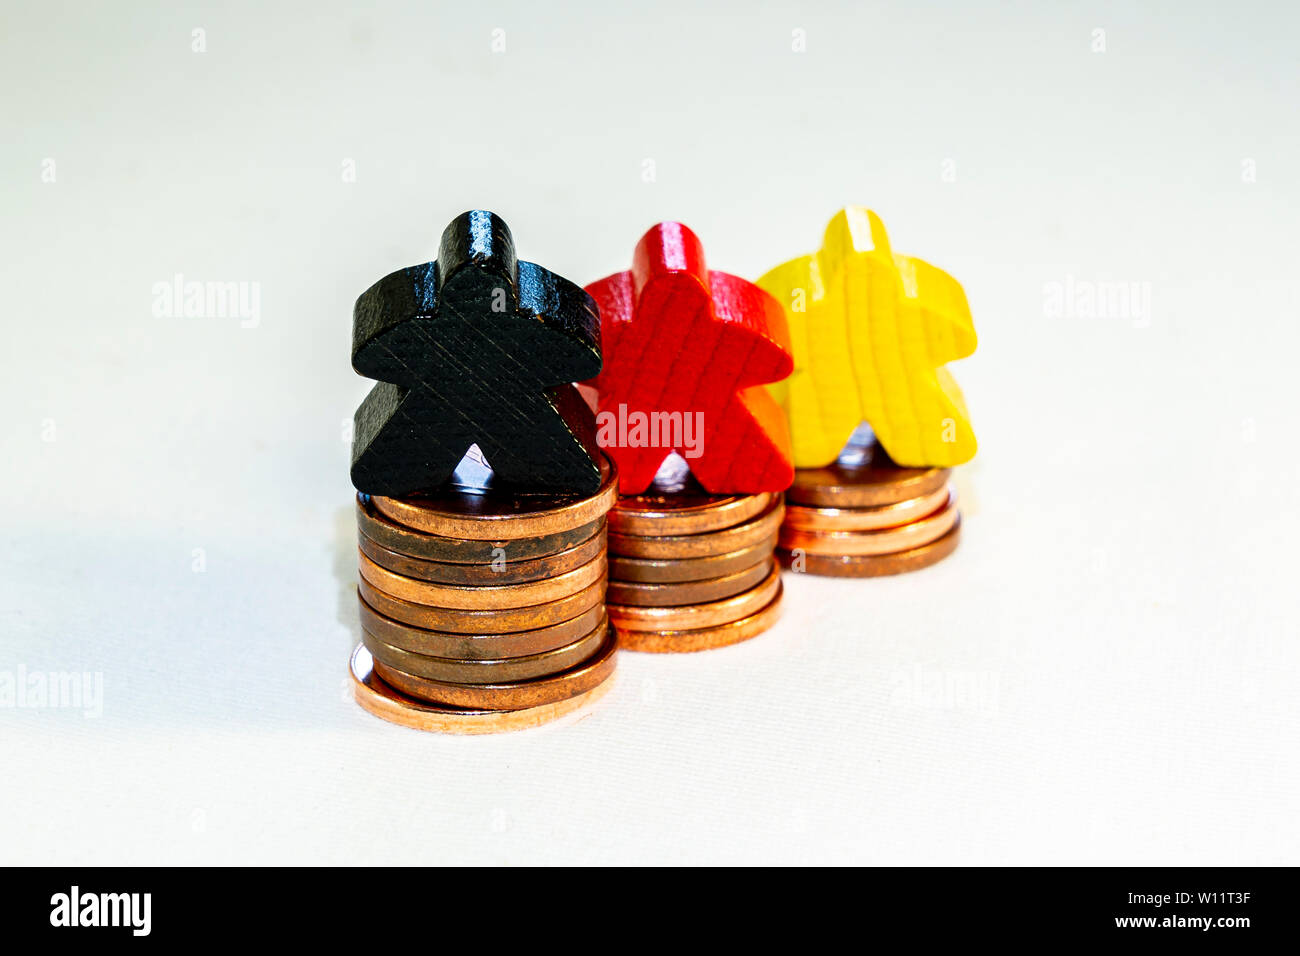 illustration of financial success concept with figurines on euro cents - Stock Image